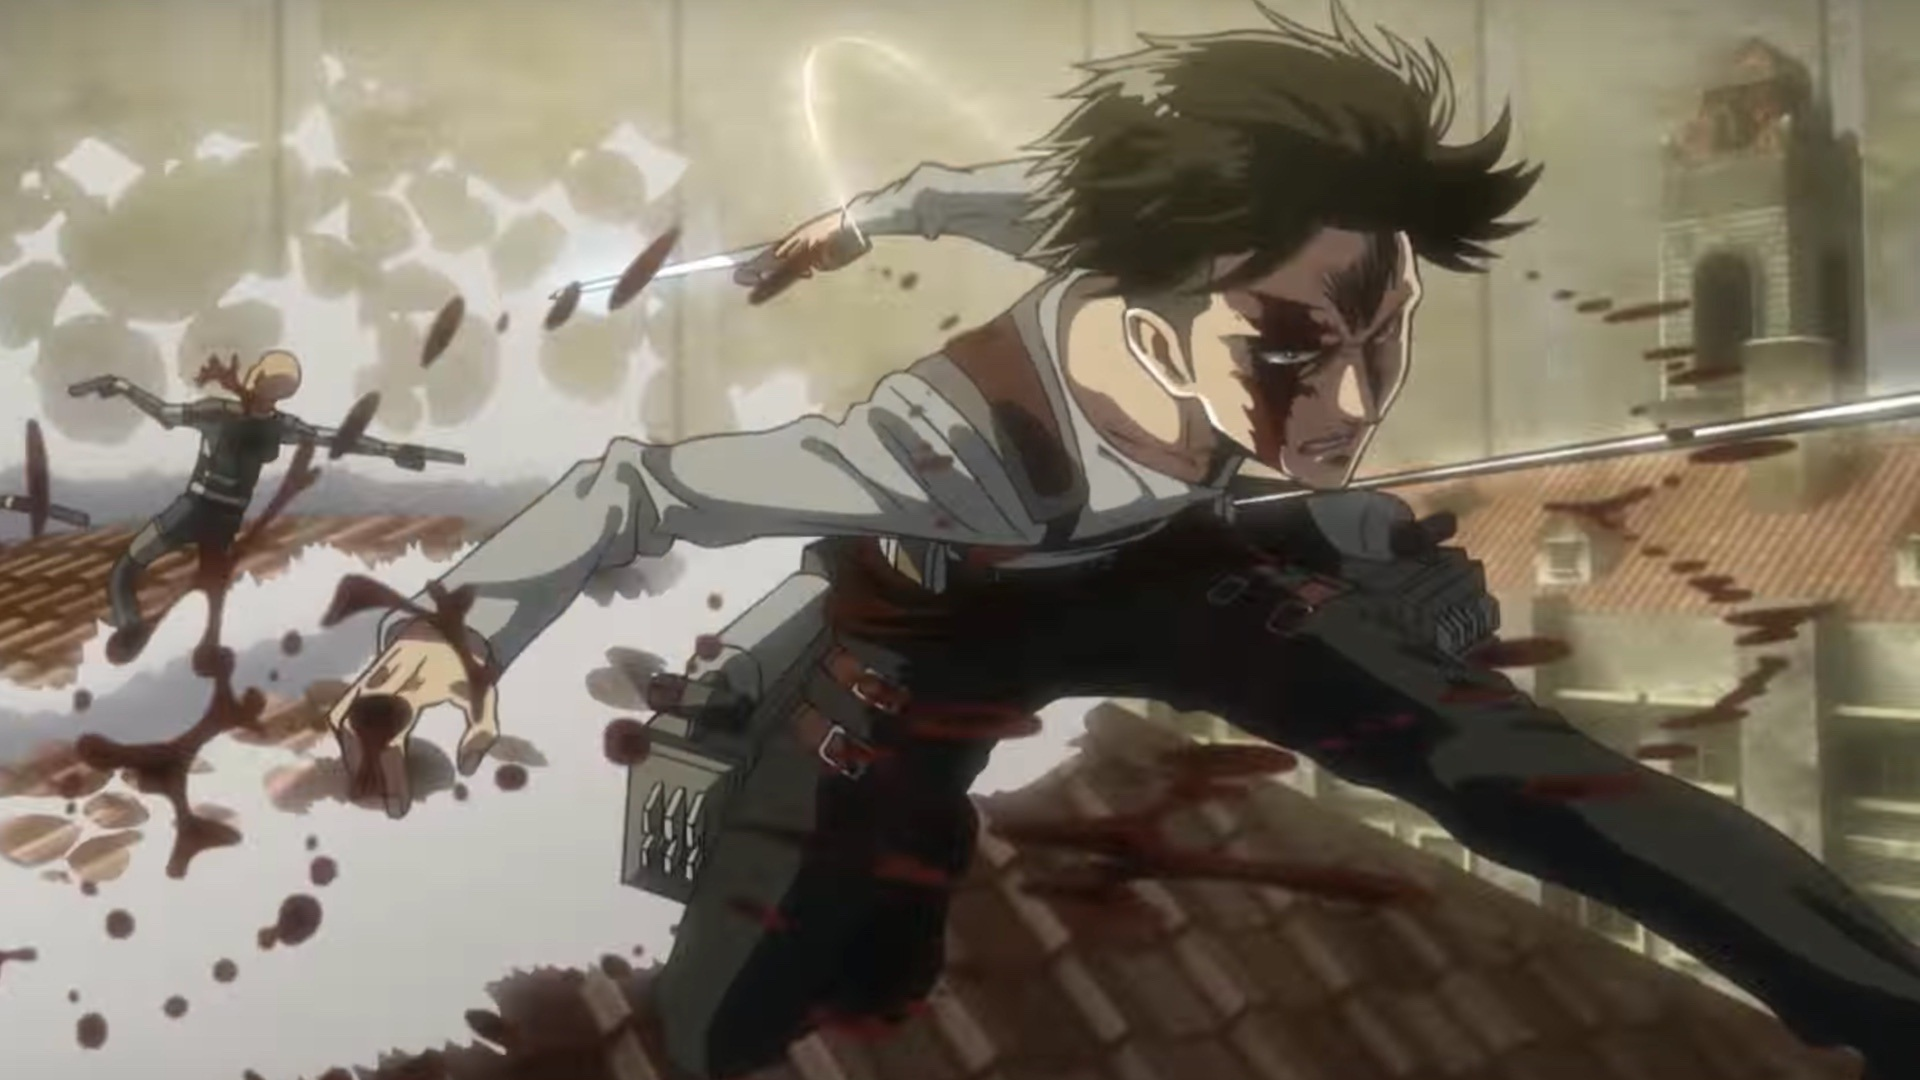 4k Attack On Titan Wallpaper Posted By Ethan Walker